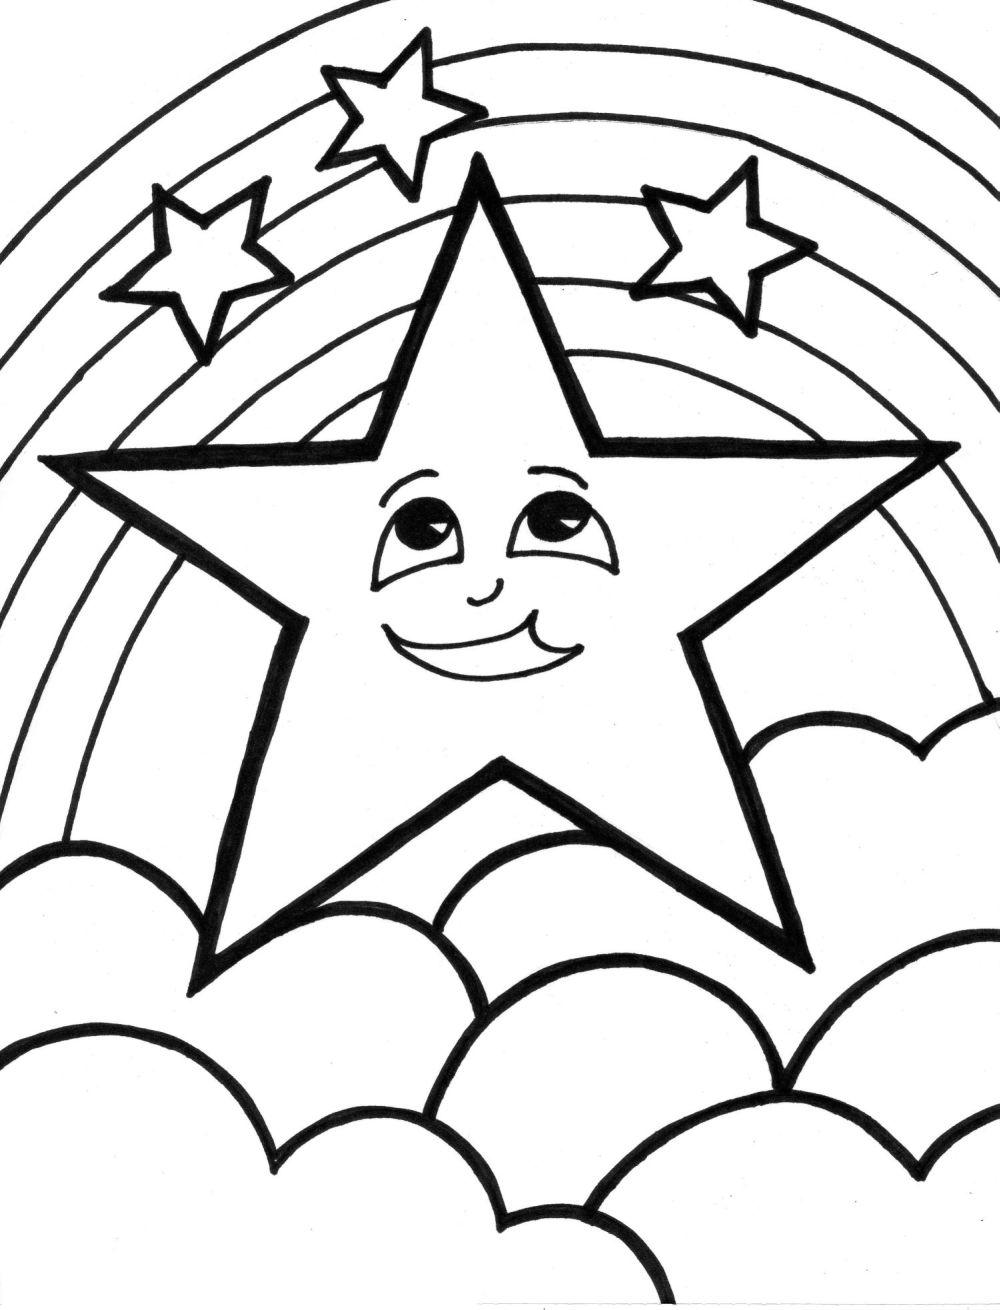 1000x1310 Star Coloring Pages Printable Birthday Party Ideas For Zoe